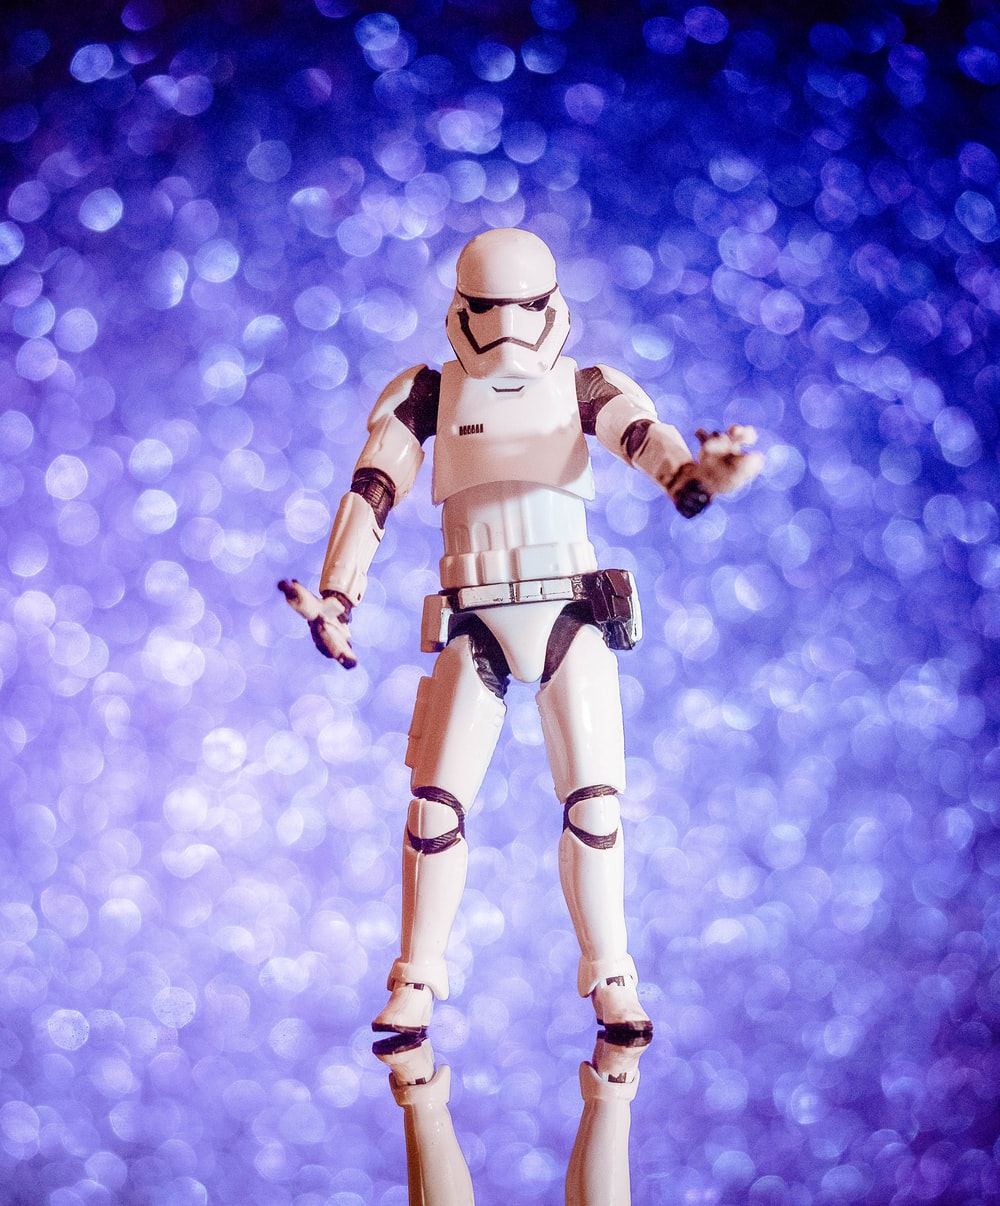 Stormtrooper toy